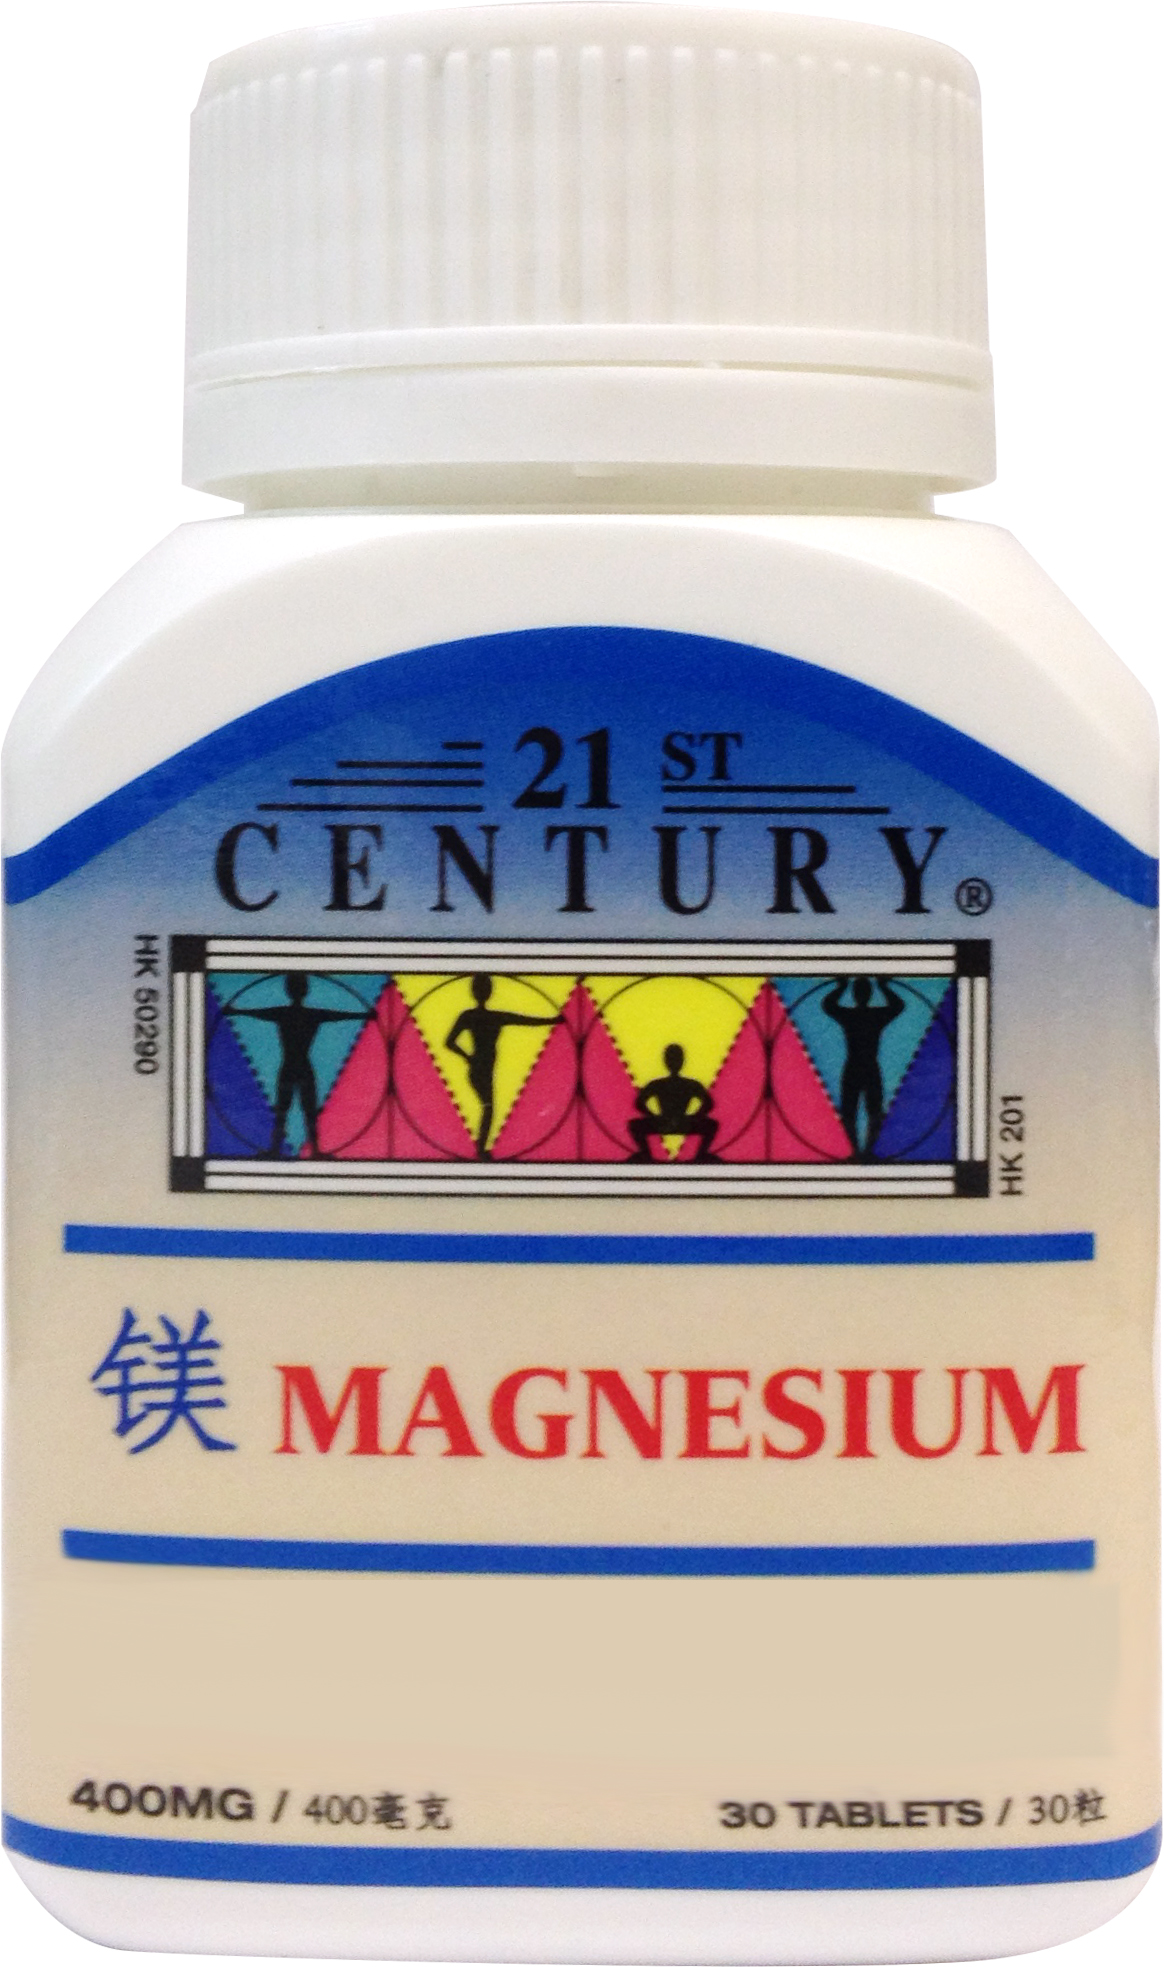 MAGNESIUM 400mg for heart health